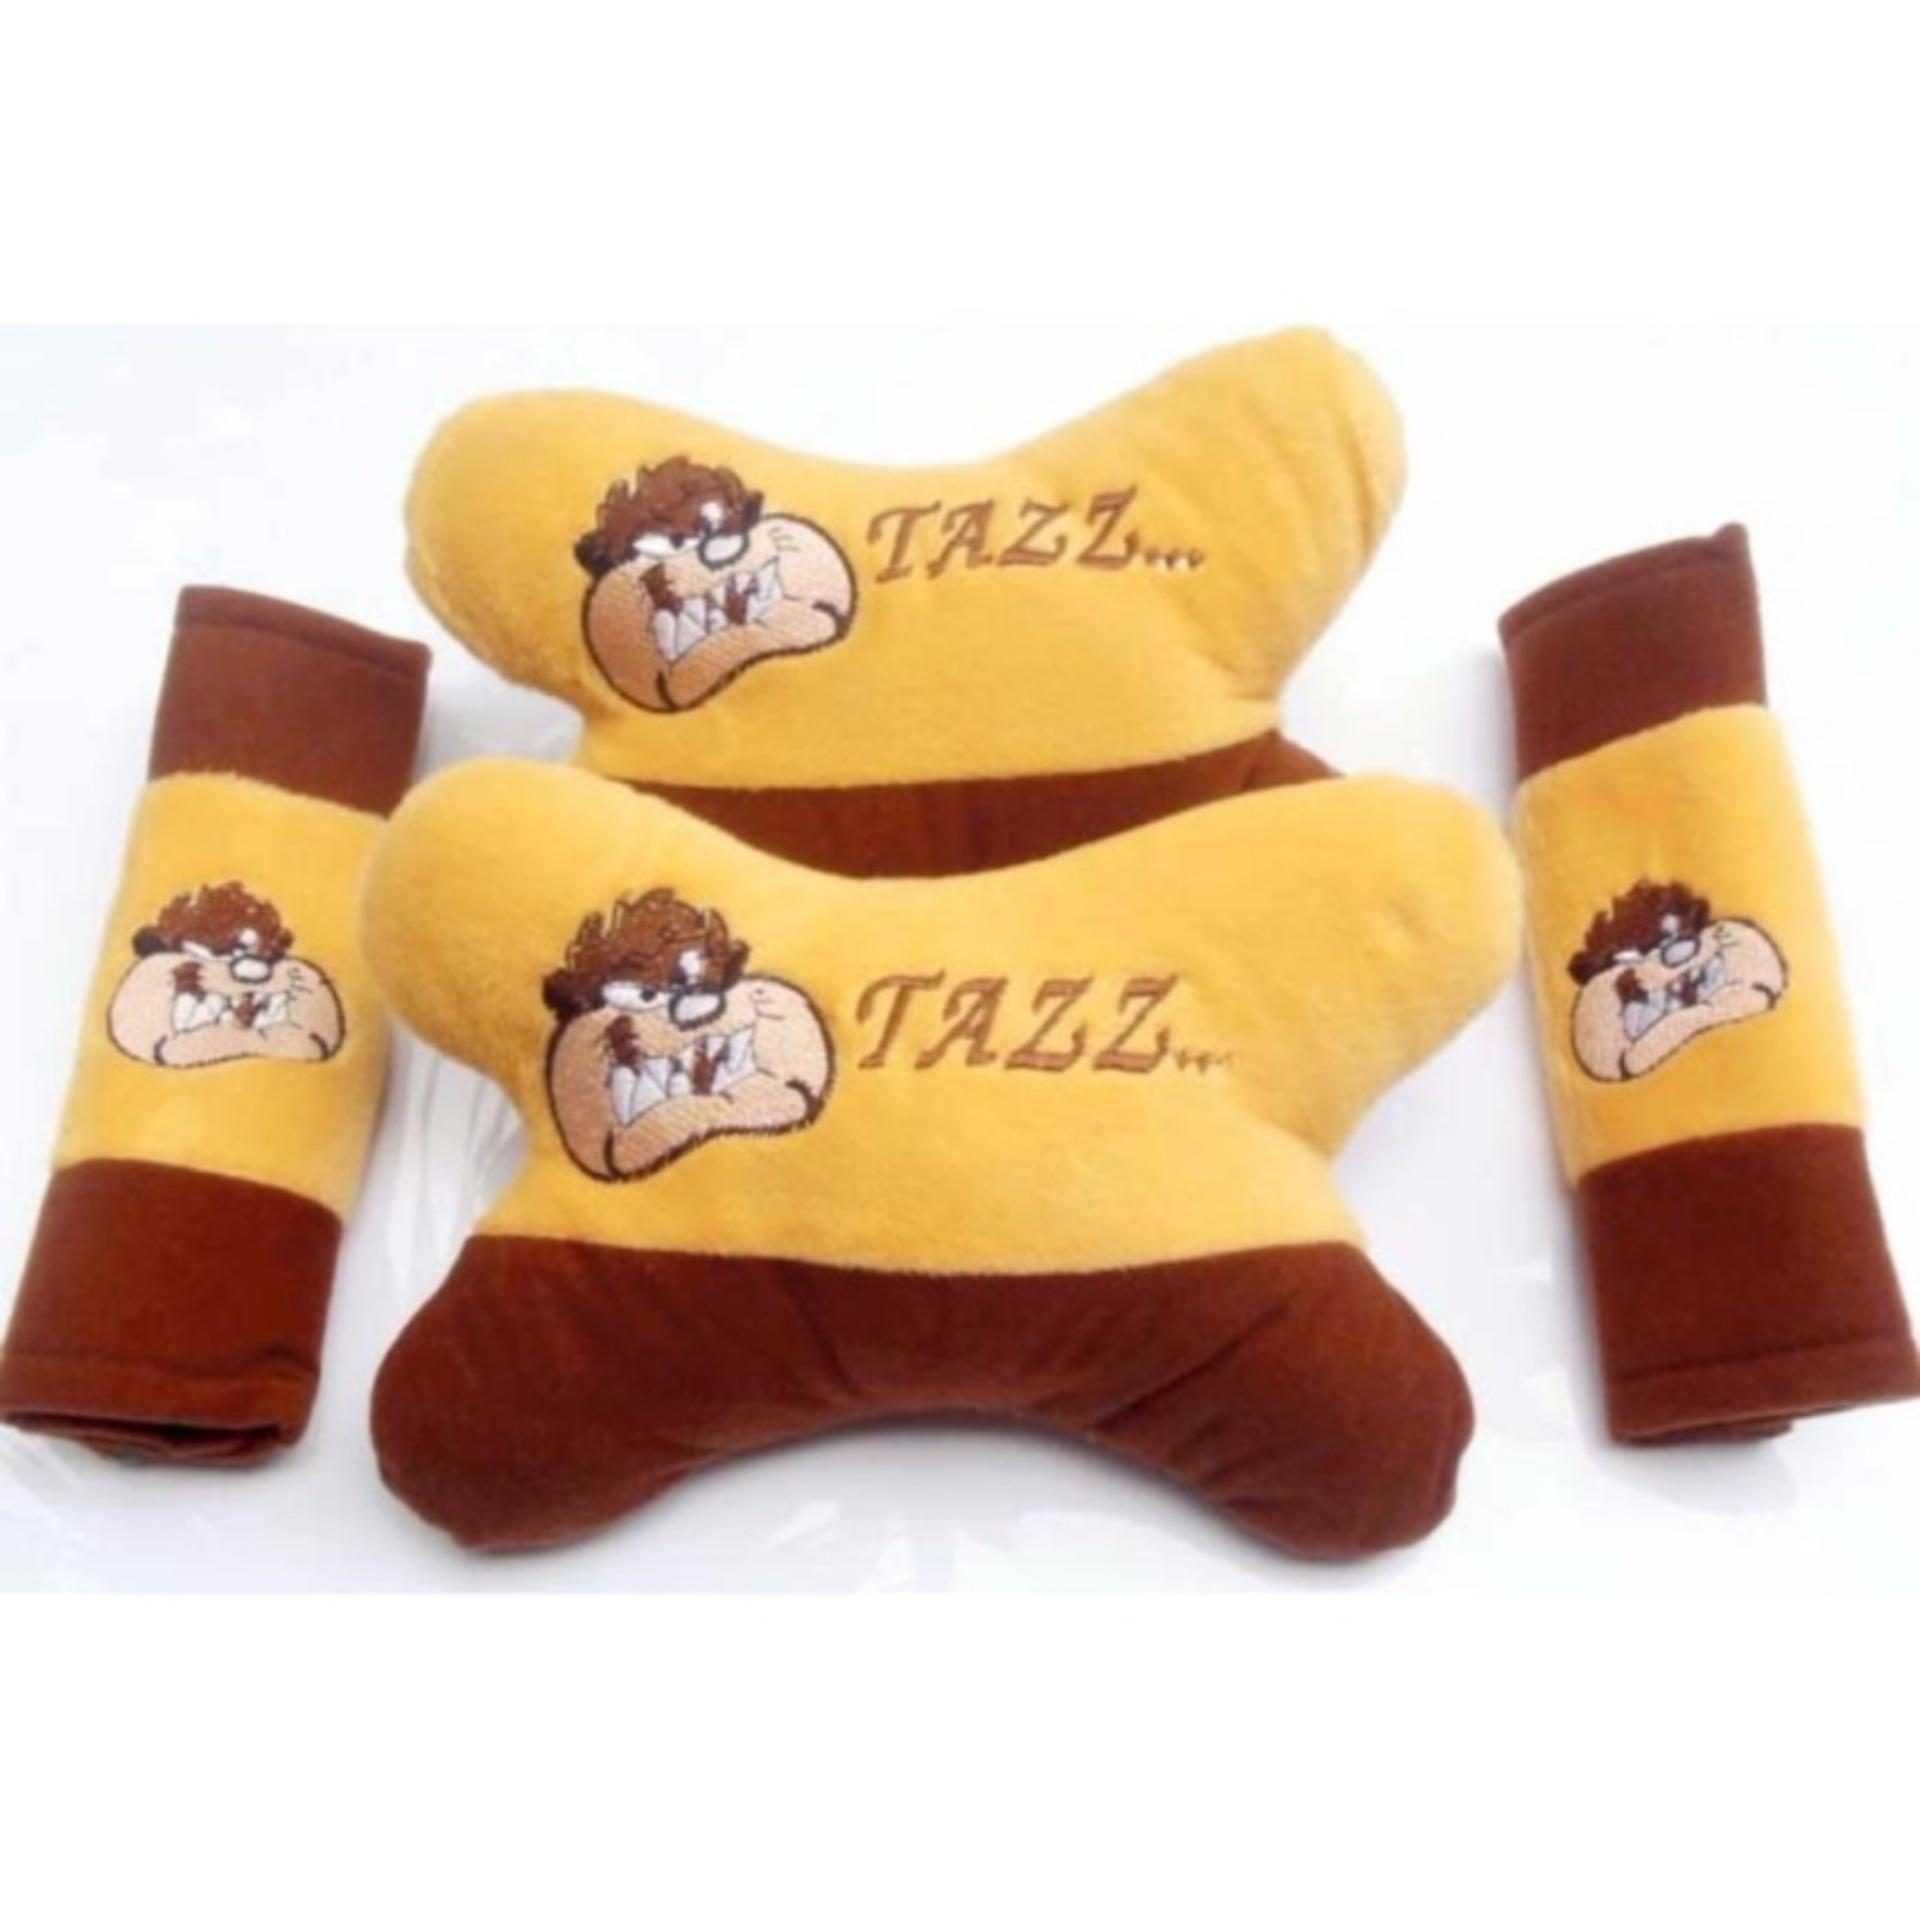 set bantal mobil 3in1 tazzmania